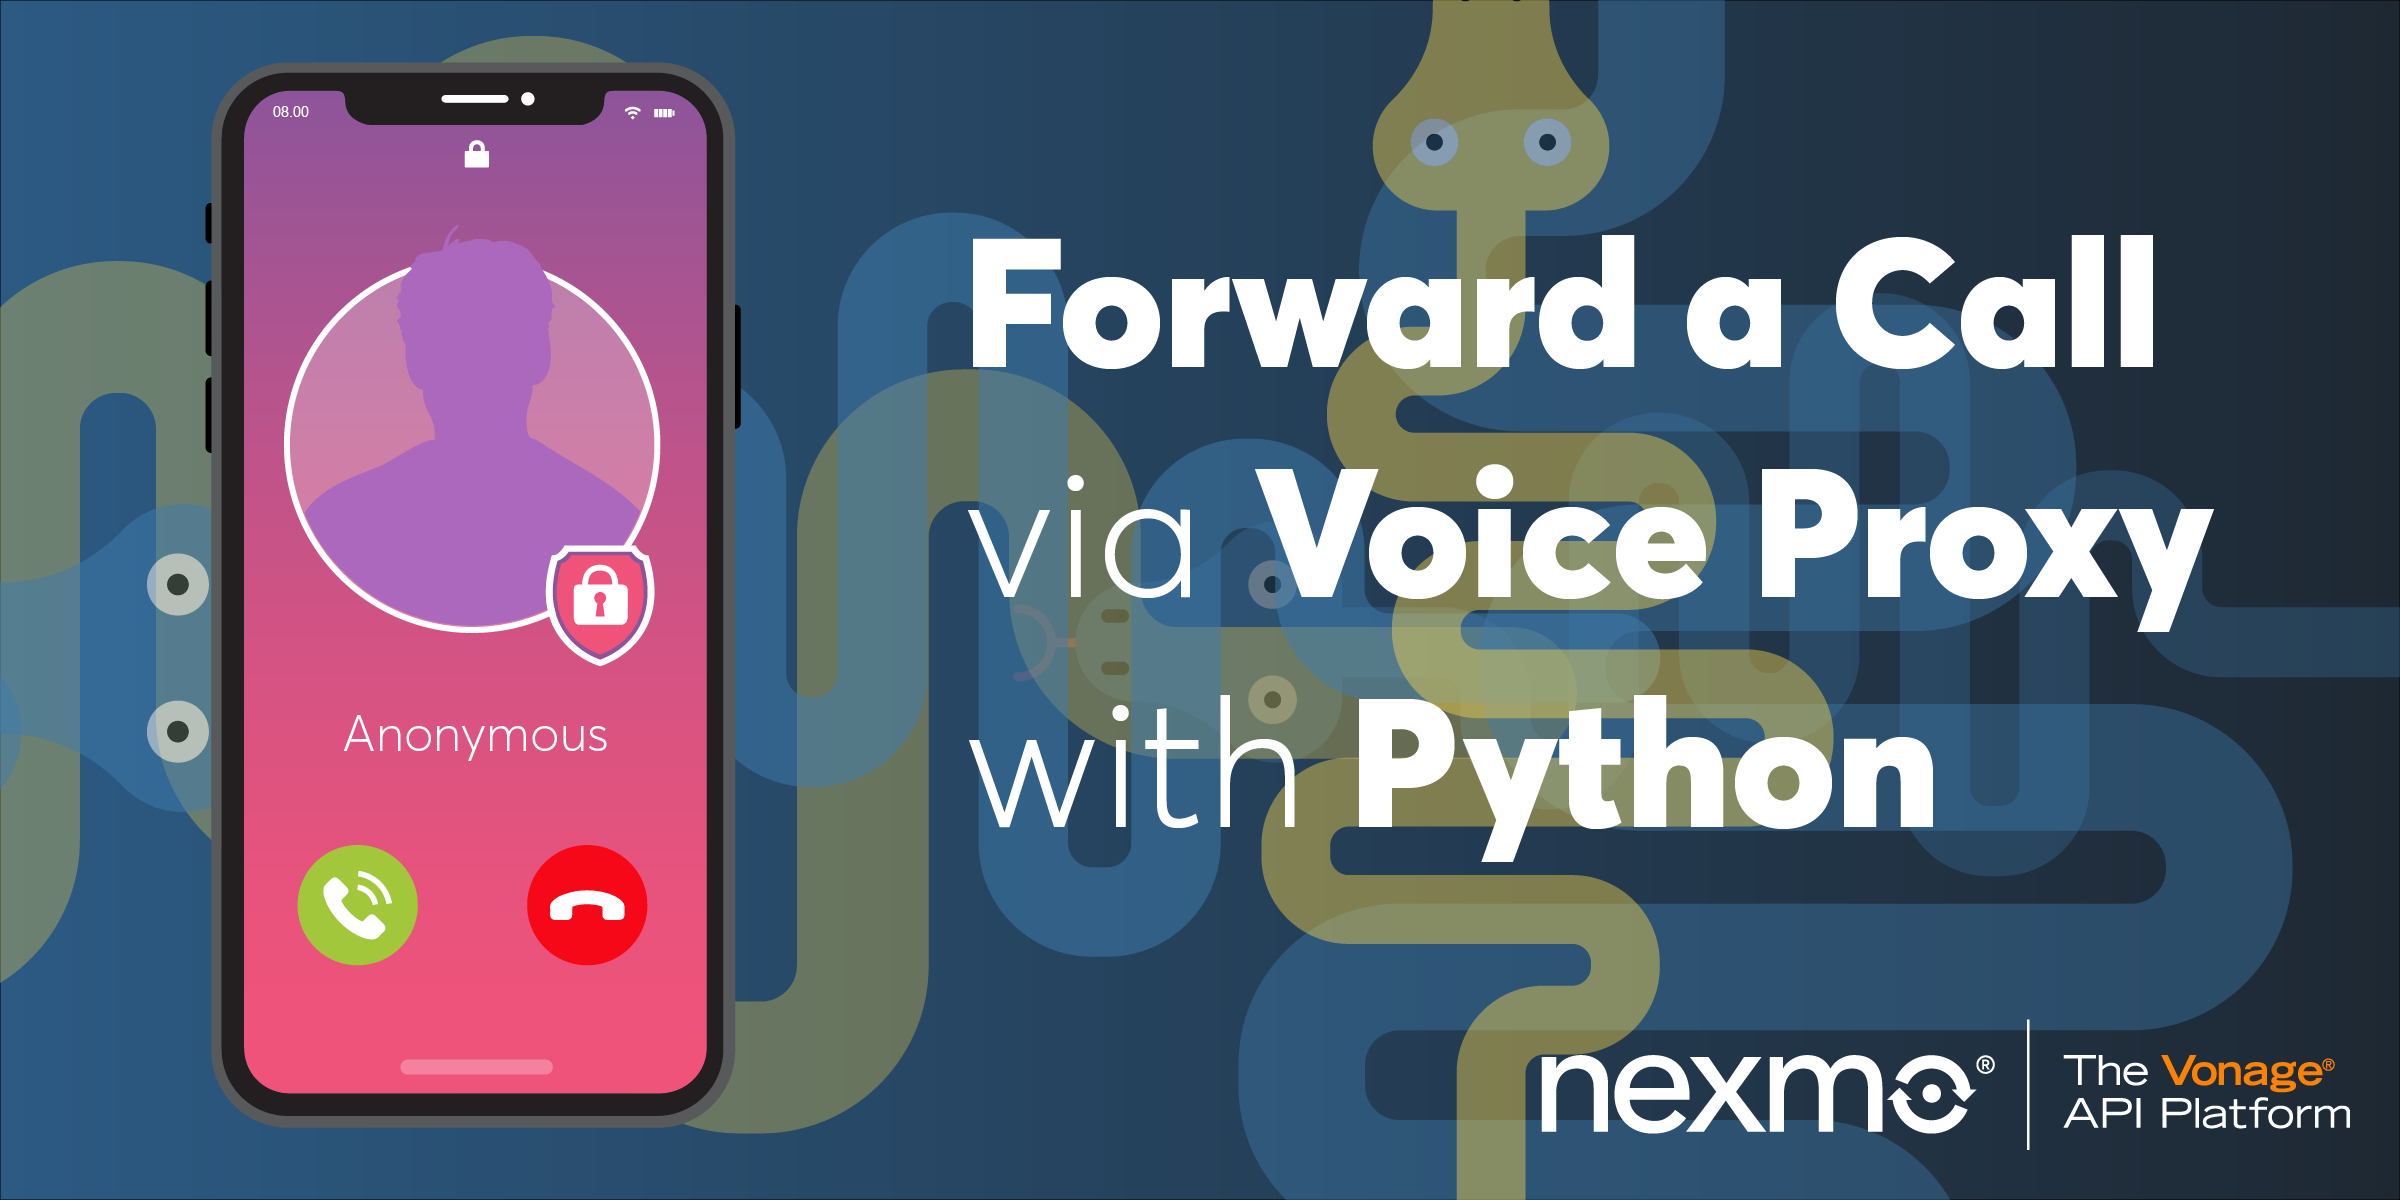 Forward a Telephone Call Via Voice Proxy with Python and Starlette